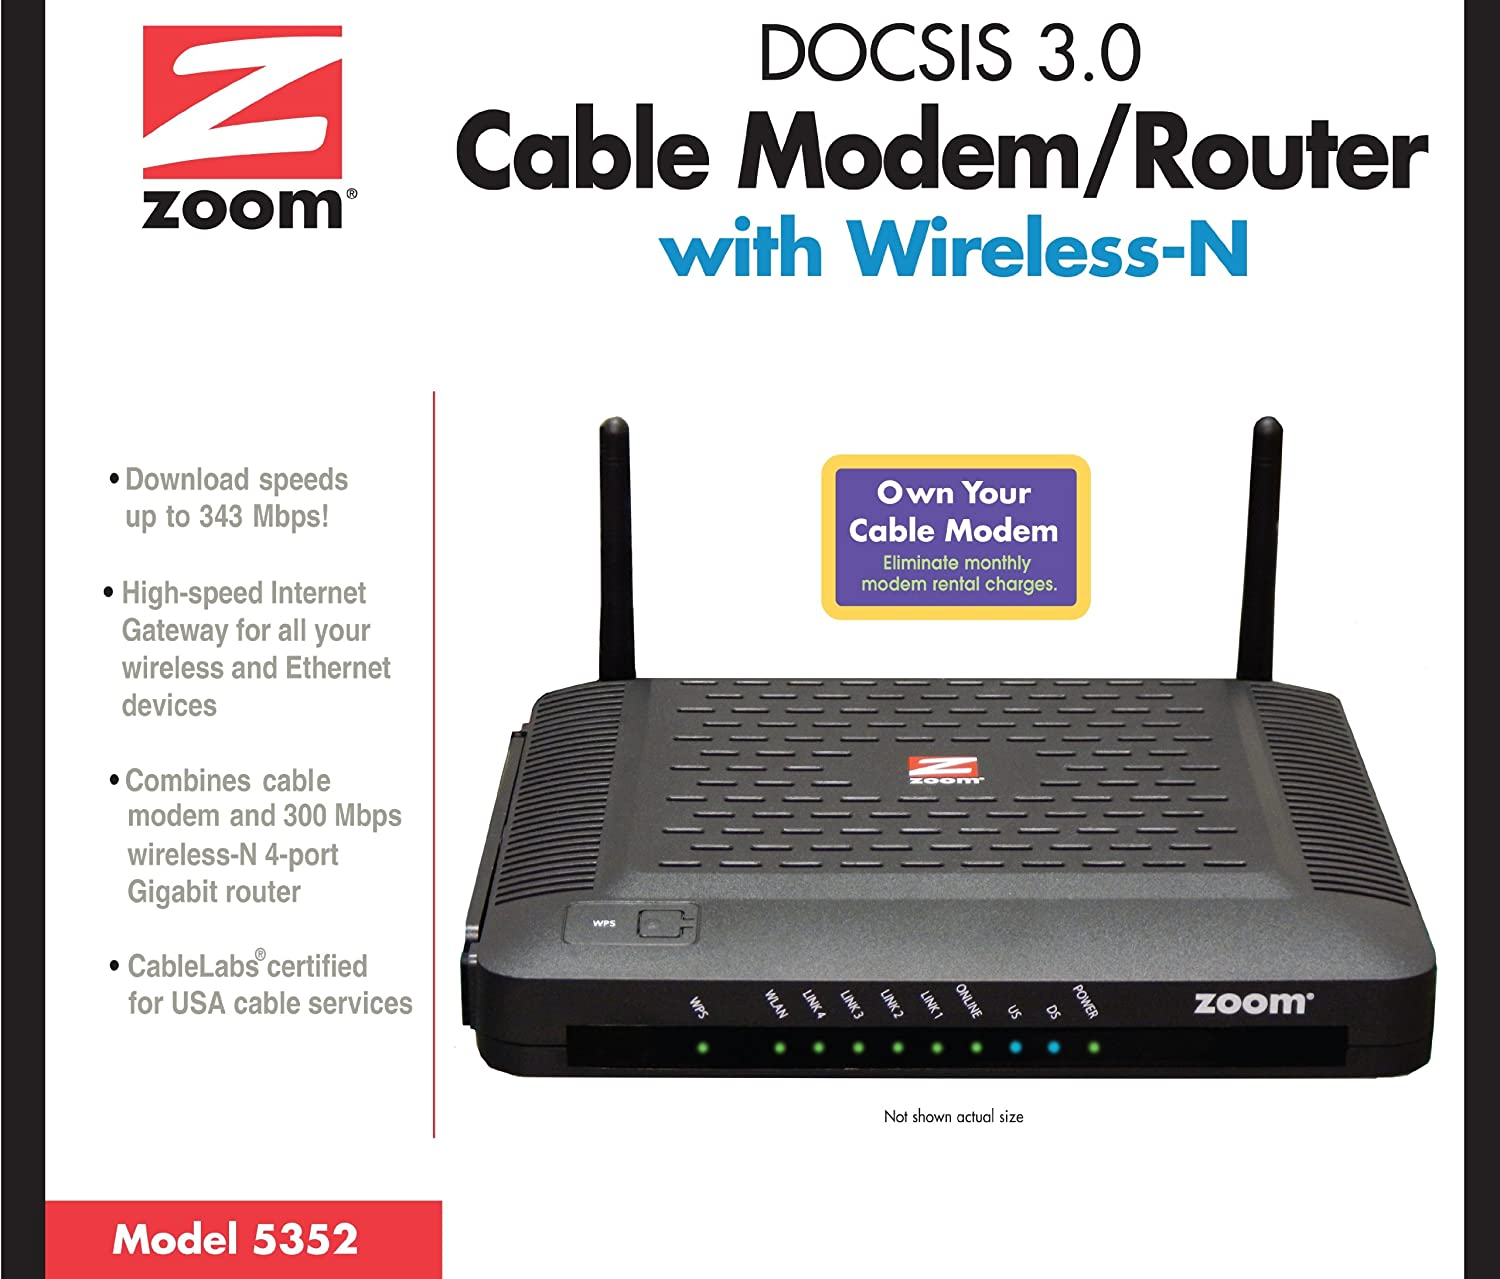 Amazon.com: ZOOM DOCSIS 3.0 Cable Modem and Wireless-N Router ...